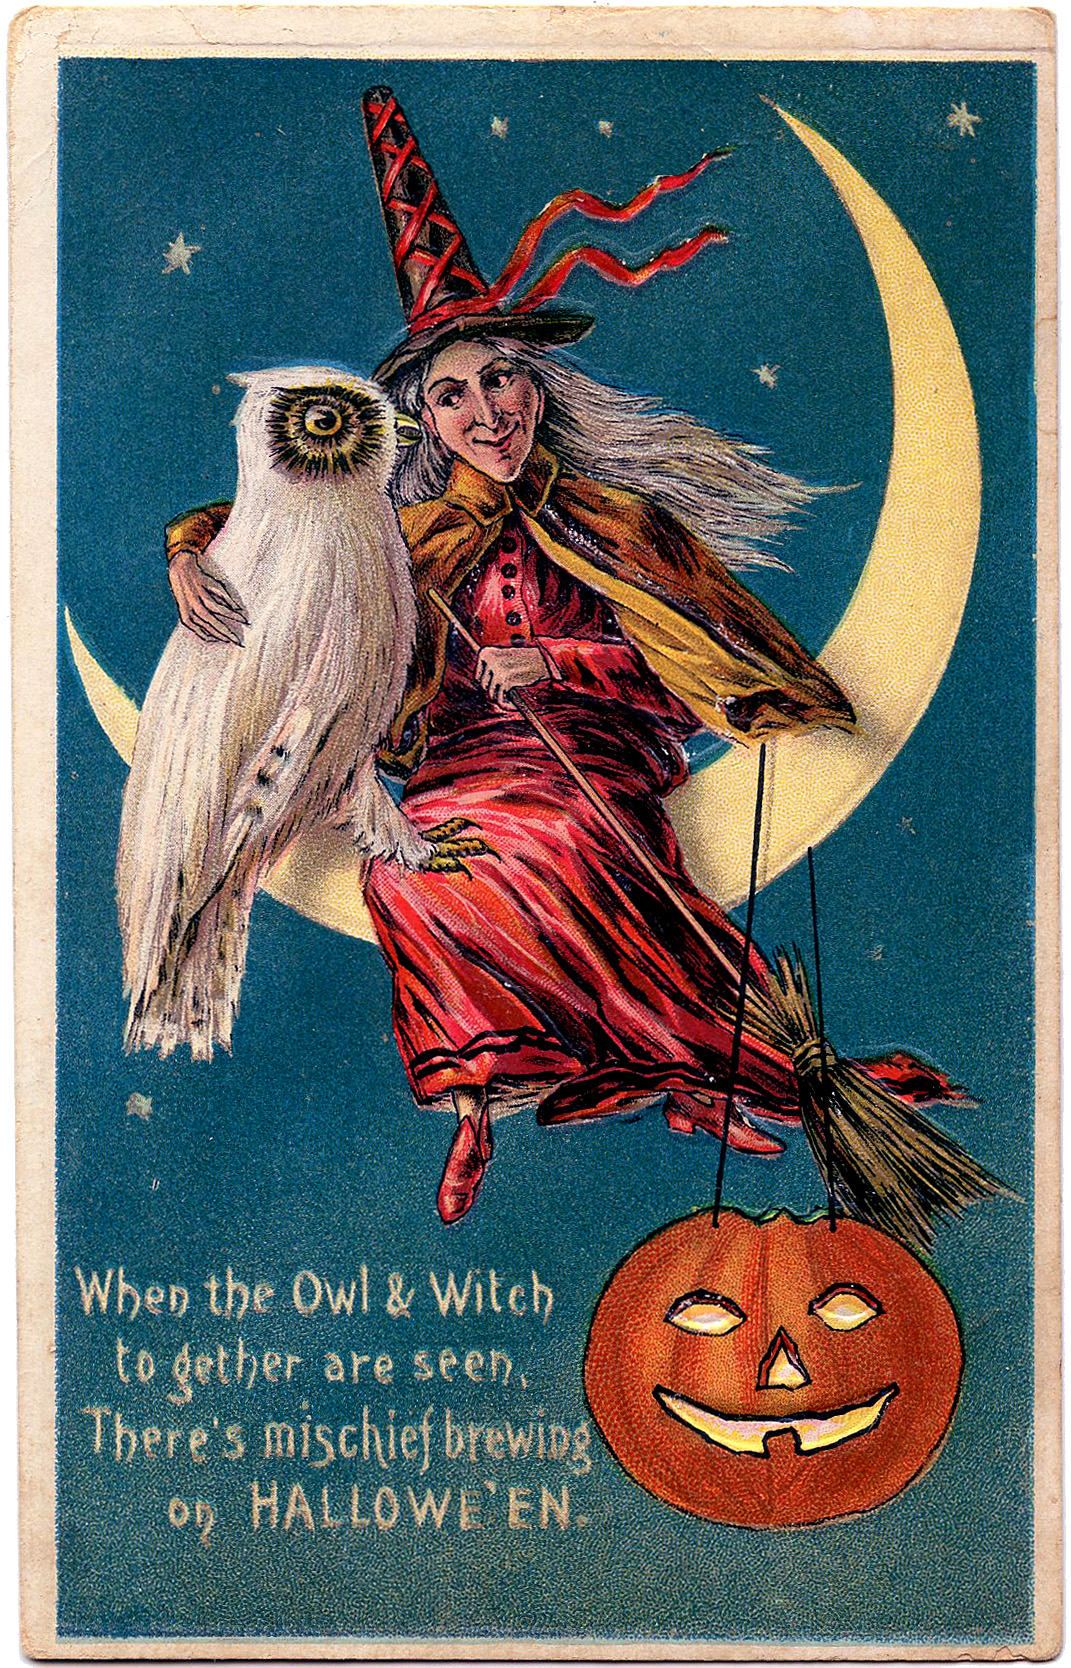 9 Spooky Red Halloween Witch Images - Vintage! - The ...